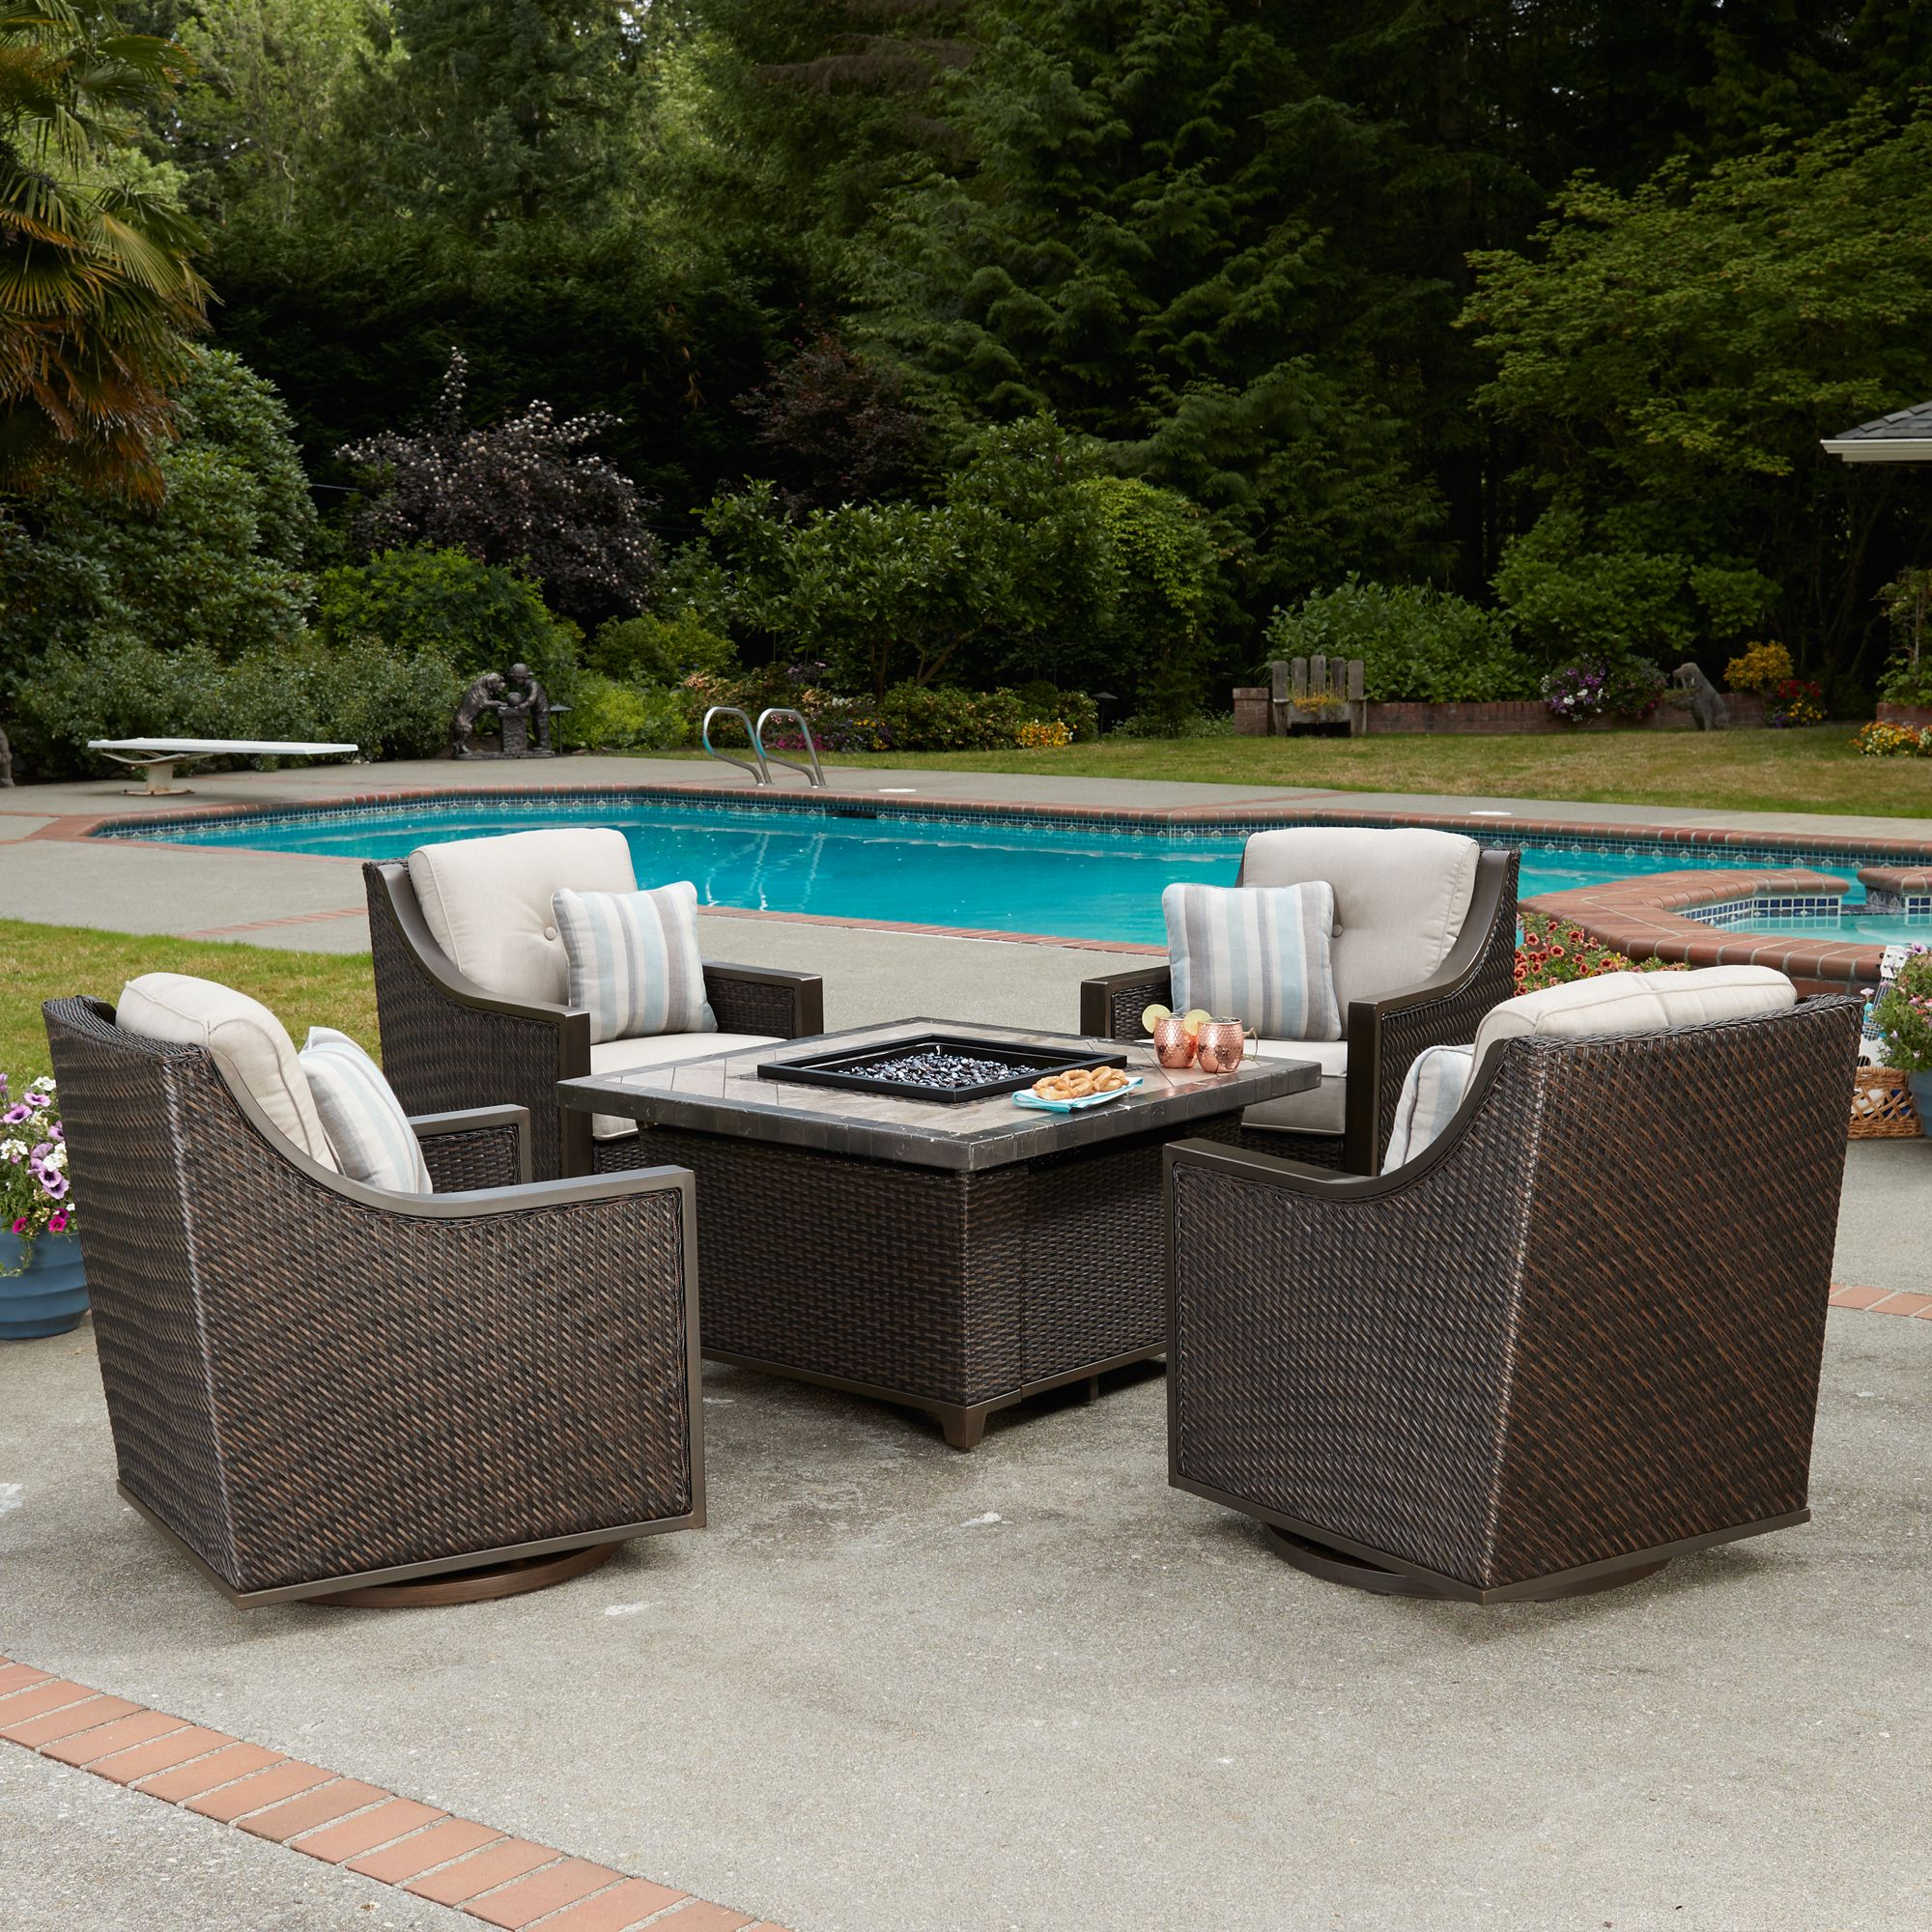 Table Lounge Garden Furniture Couch Rattan Png Download 1500 Cordova 5 Piece Fire Chat Set